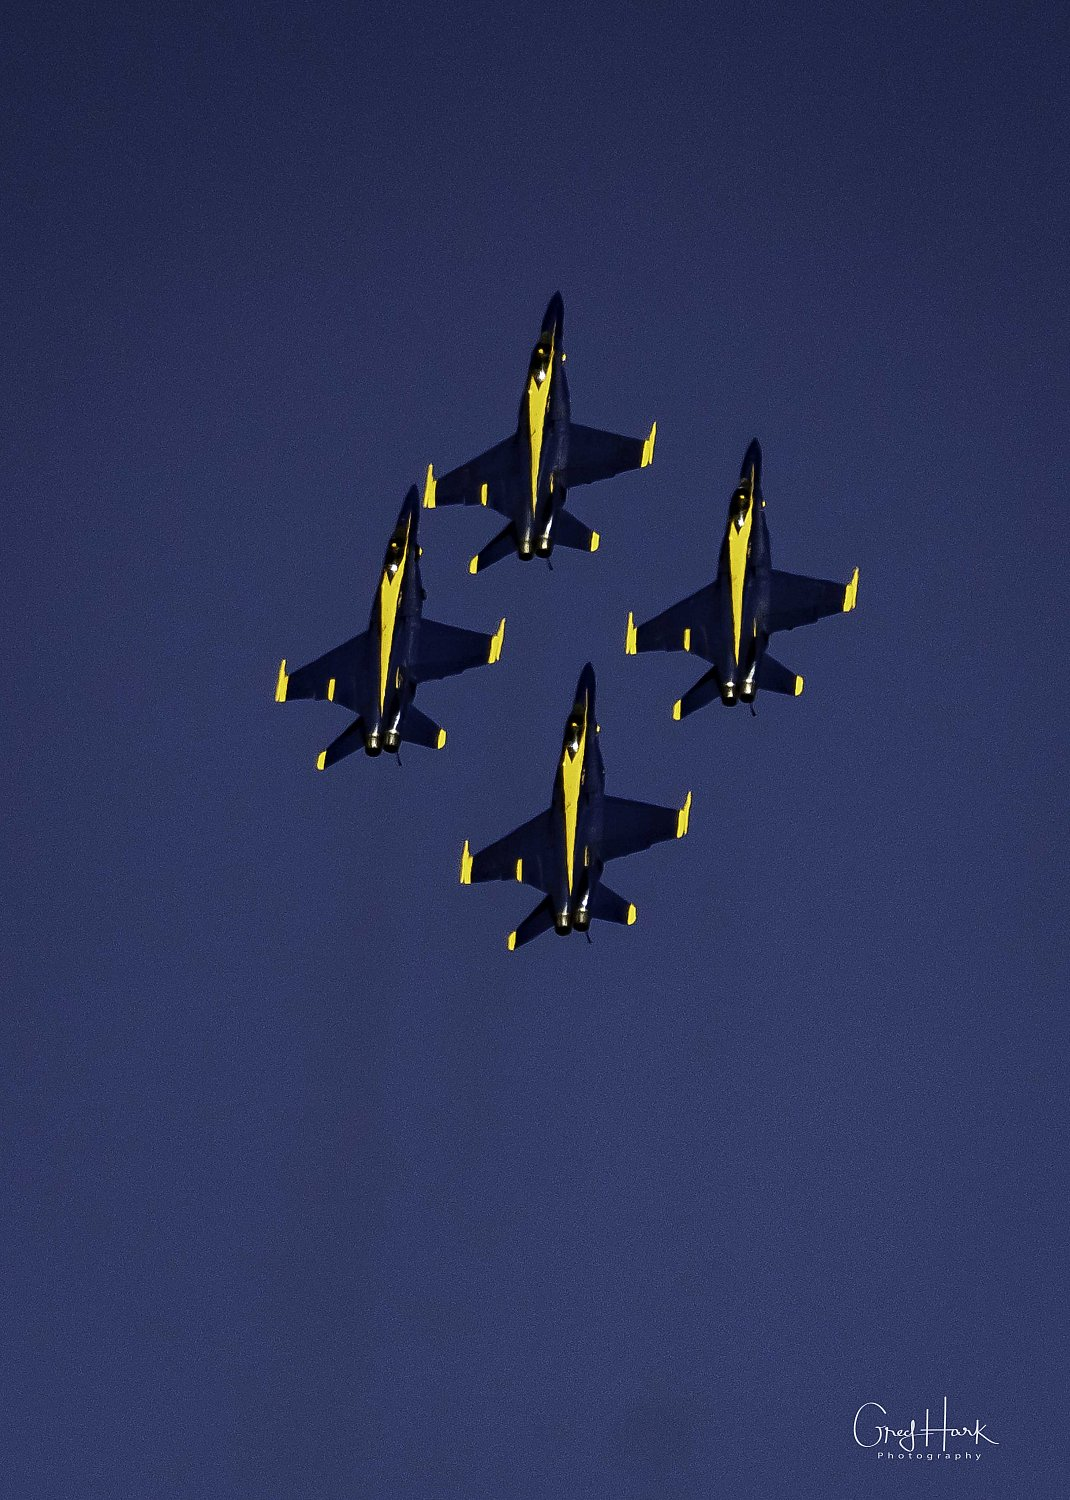 Air Show - San Francisco California,